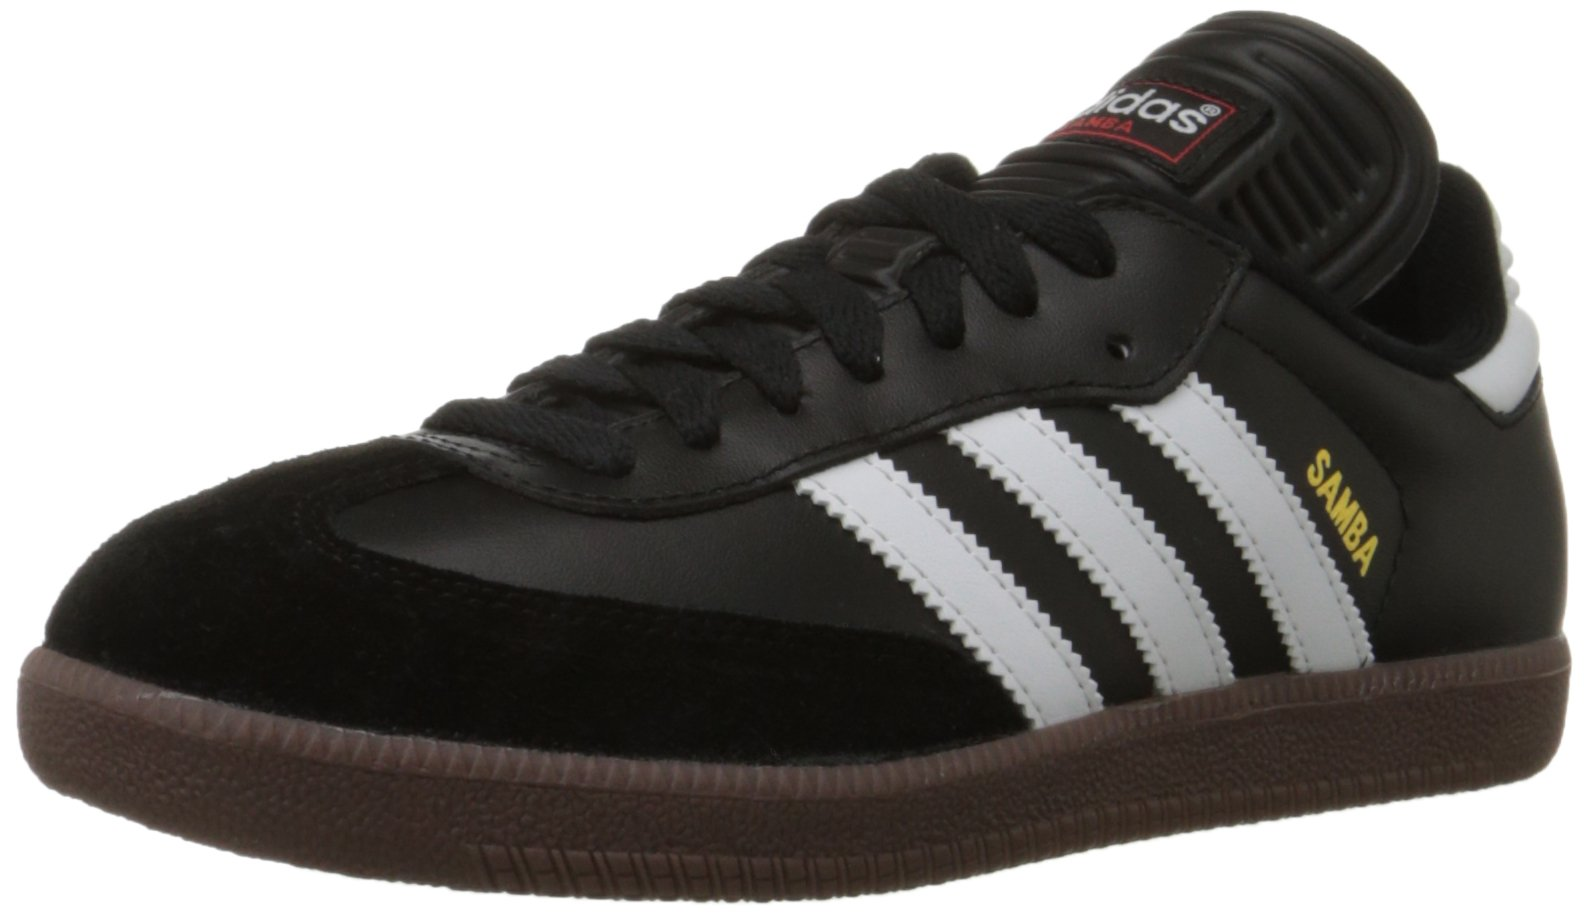 adidas Men's Samba Classic Soccer Shoe,Black/Running White,11 M US by adidas